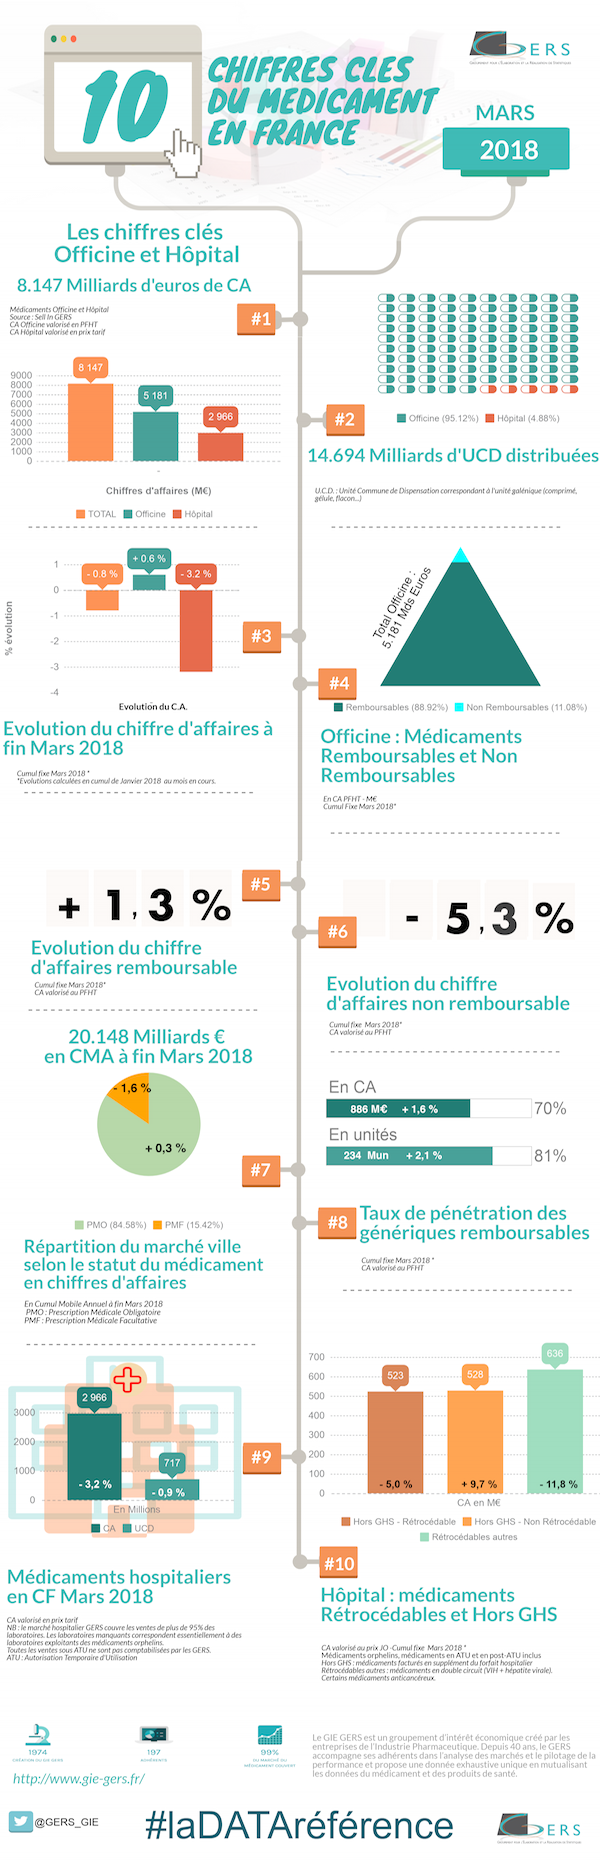 Chiffres cles GIE GERS MARS 2018 INFOGRAPHIE 600